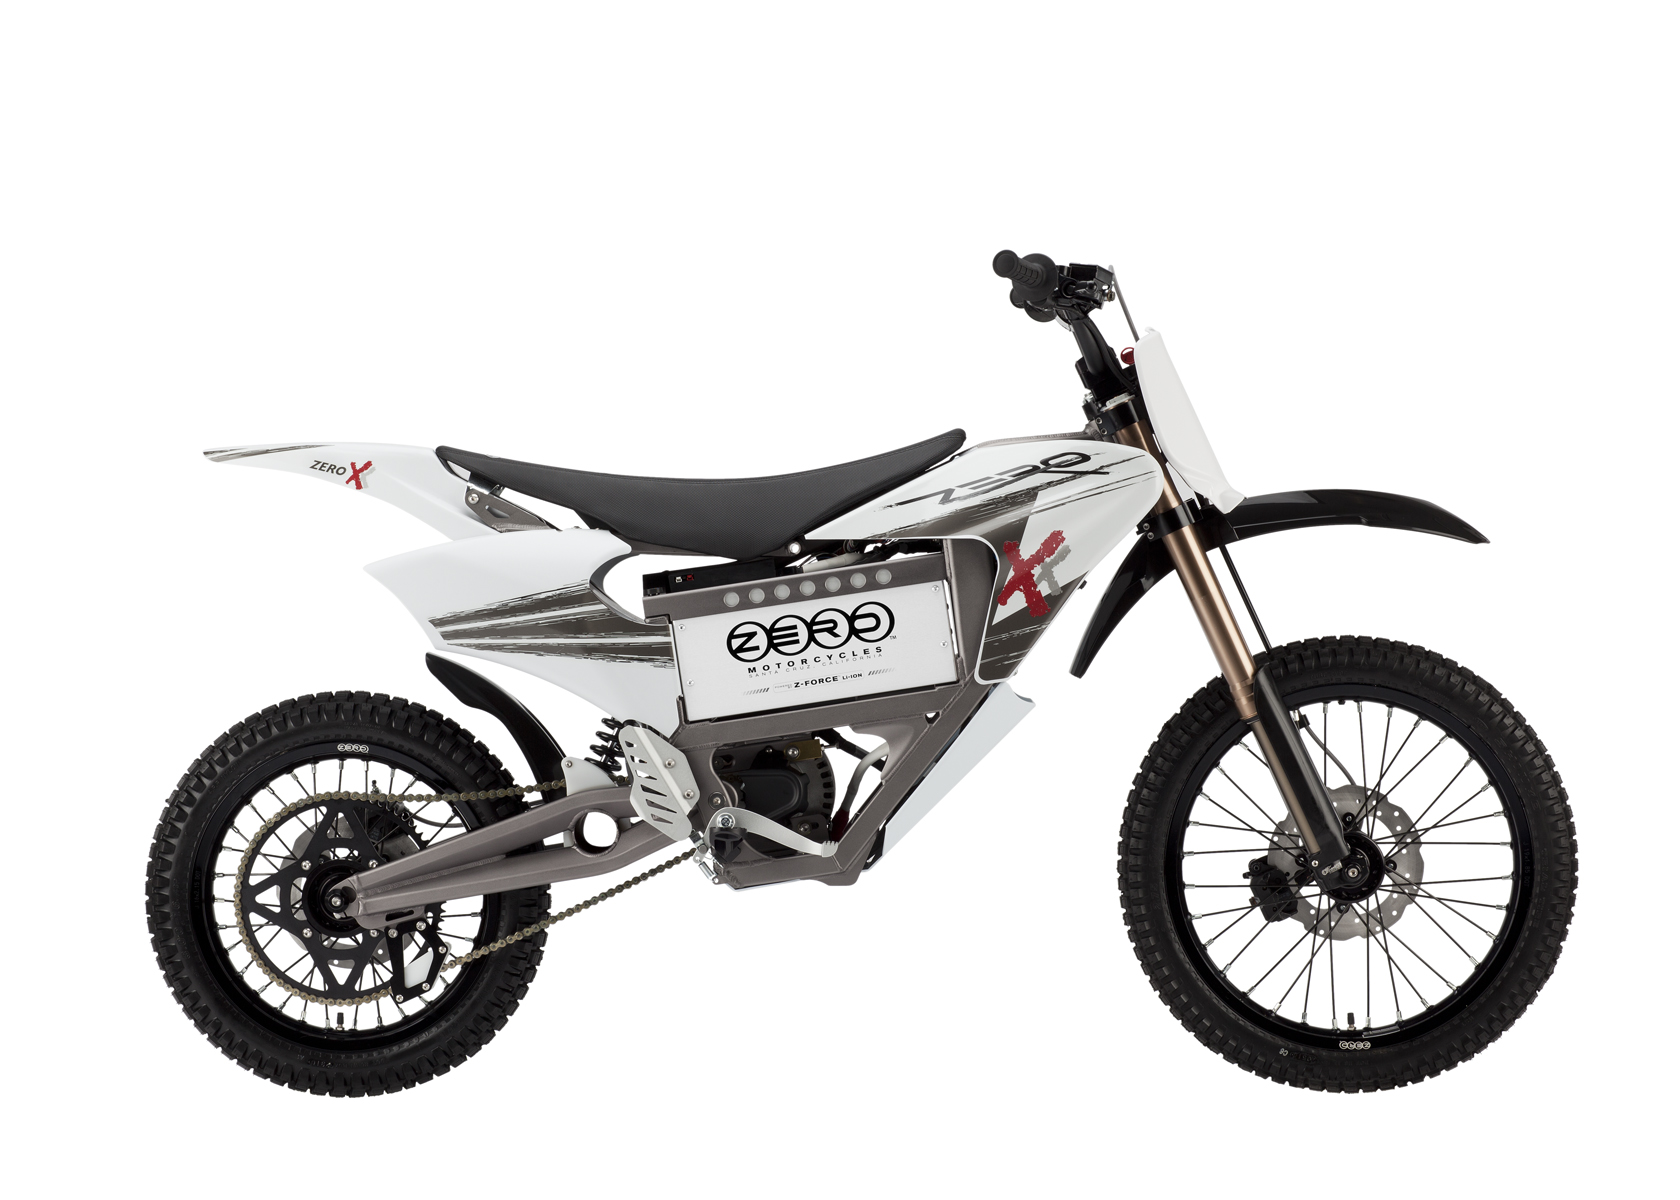 '.2011 Zero X Electric Motorcycle: Profile Right, Dirt Model, White Background.'